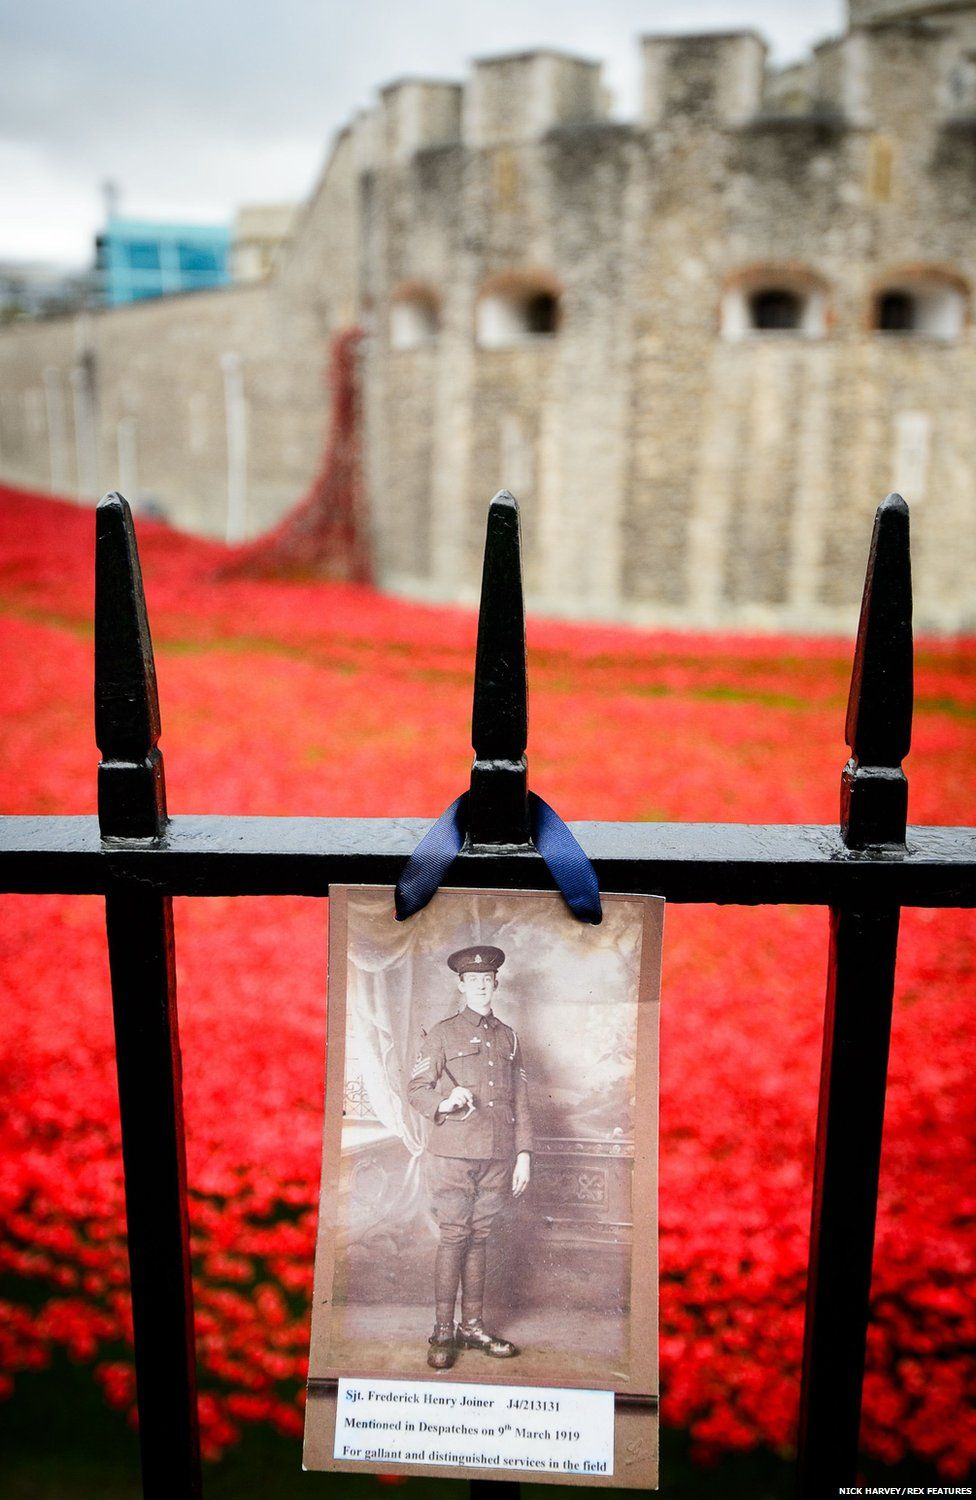 Photograph of soldier on the railings